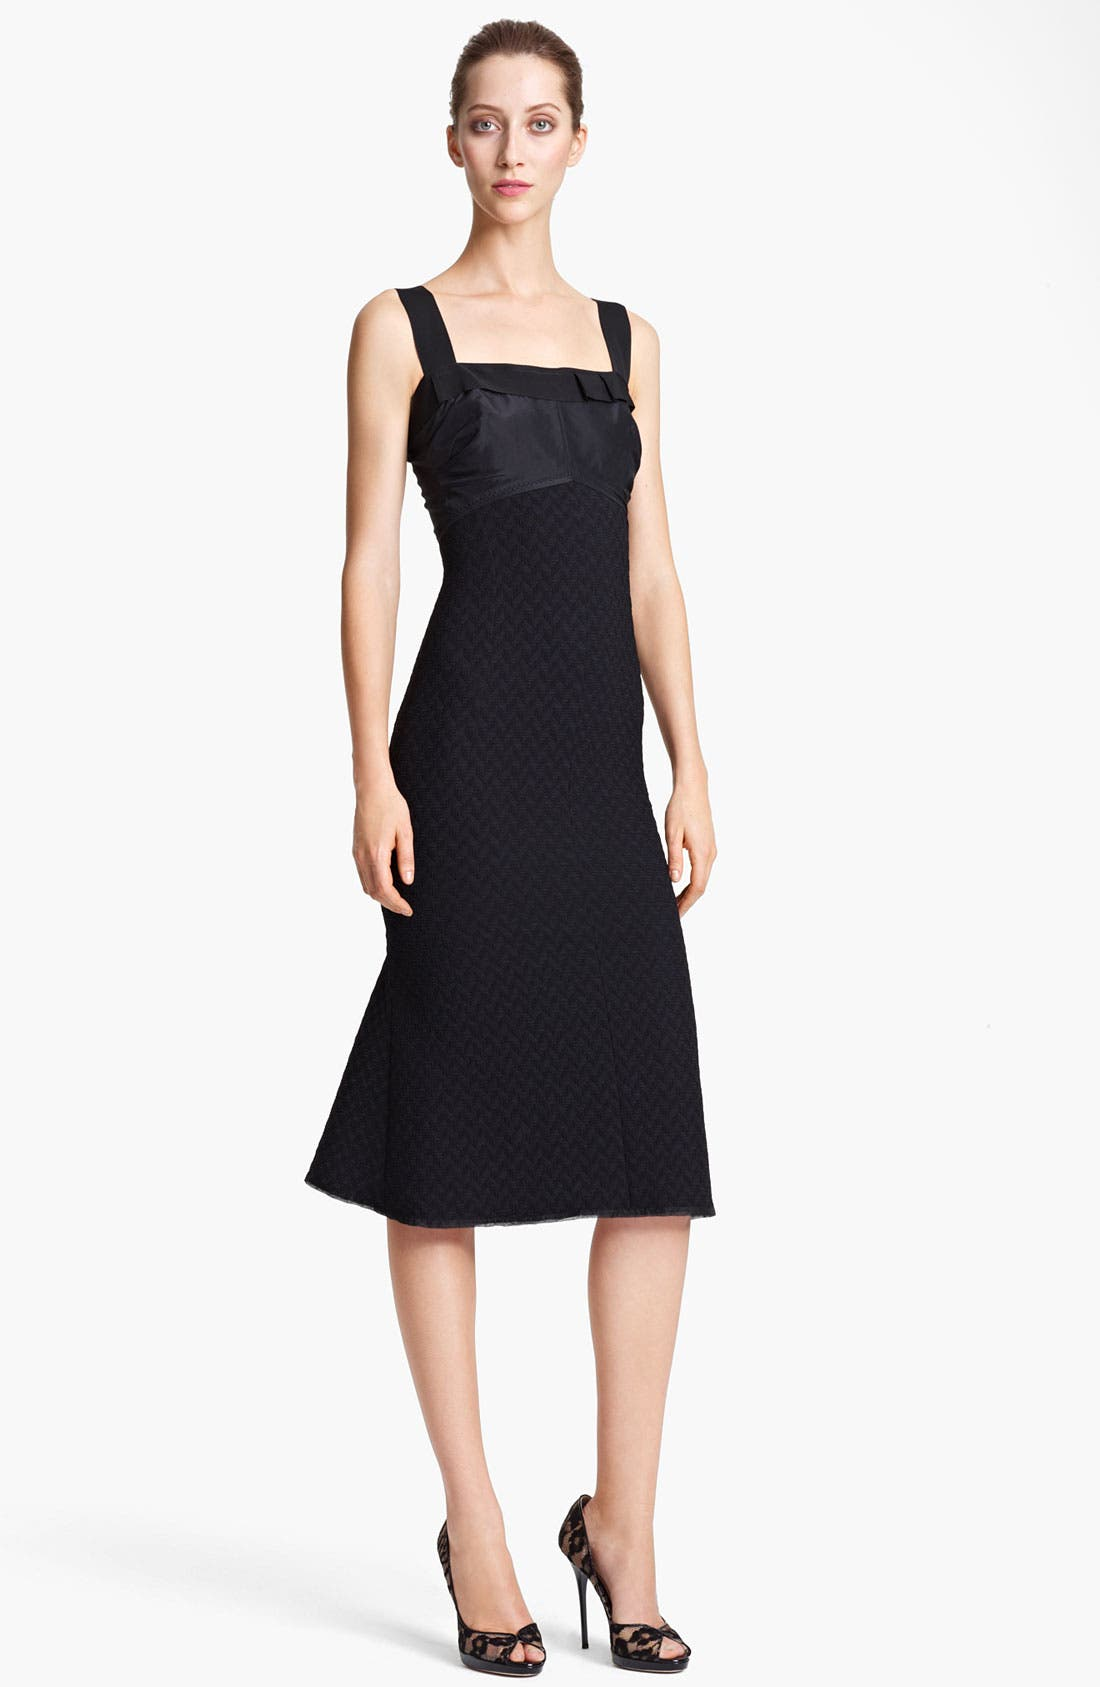 Alternate Image 1 Selected - Nina Ricci Tweed Sheath Dress